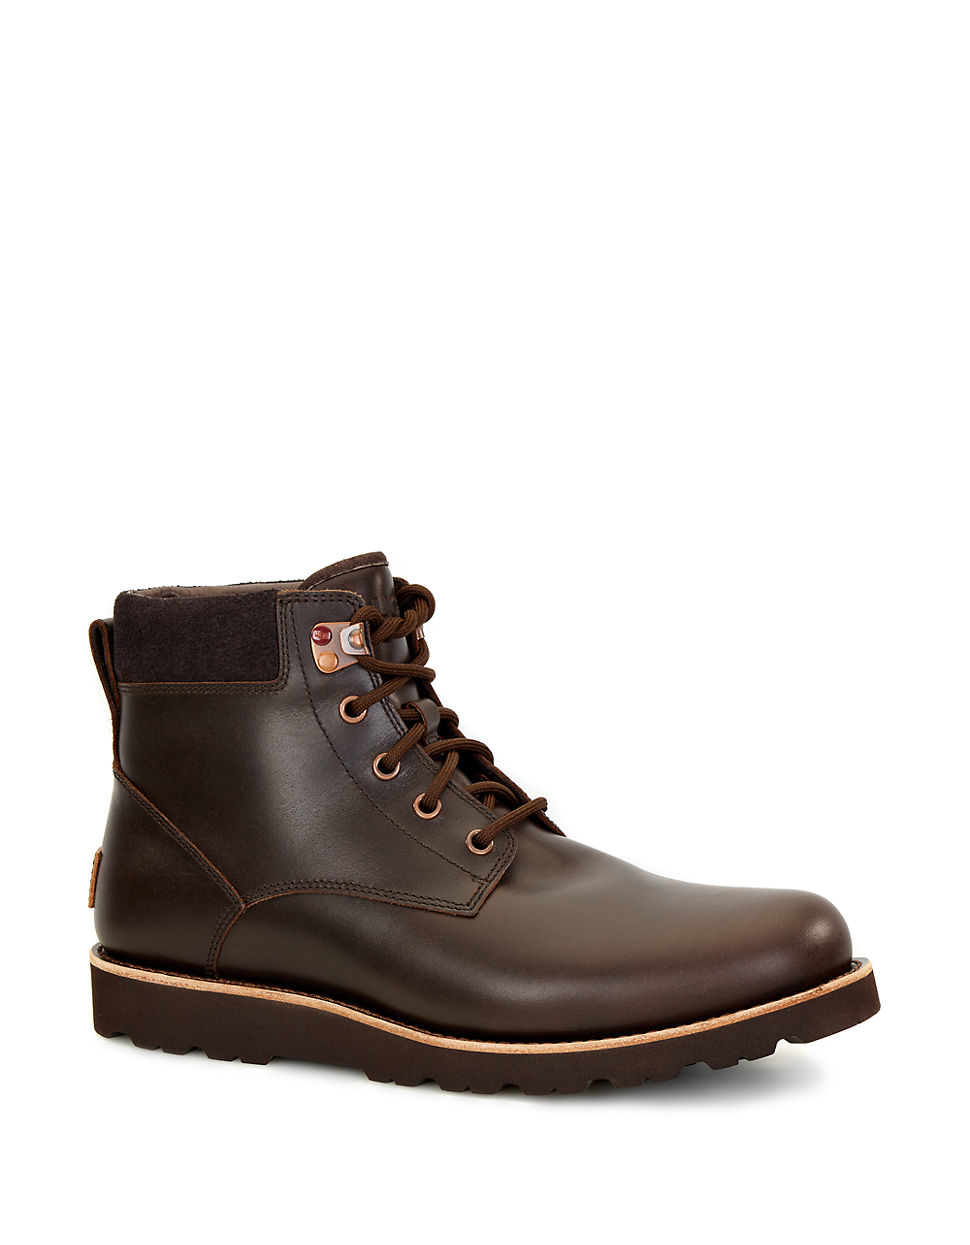 ugg brown seton shearling lined leather utility boots